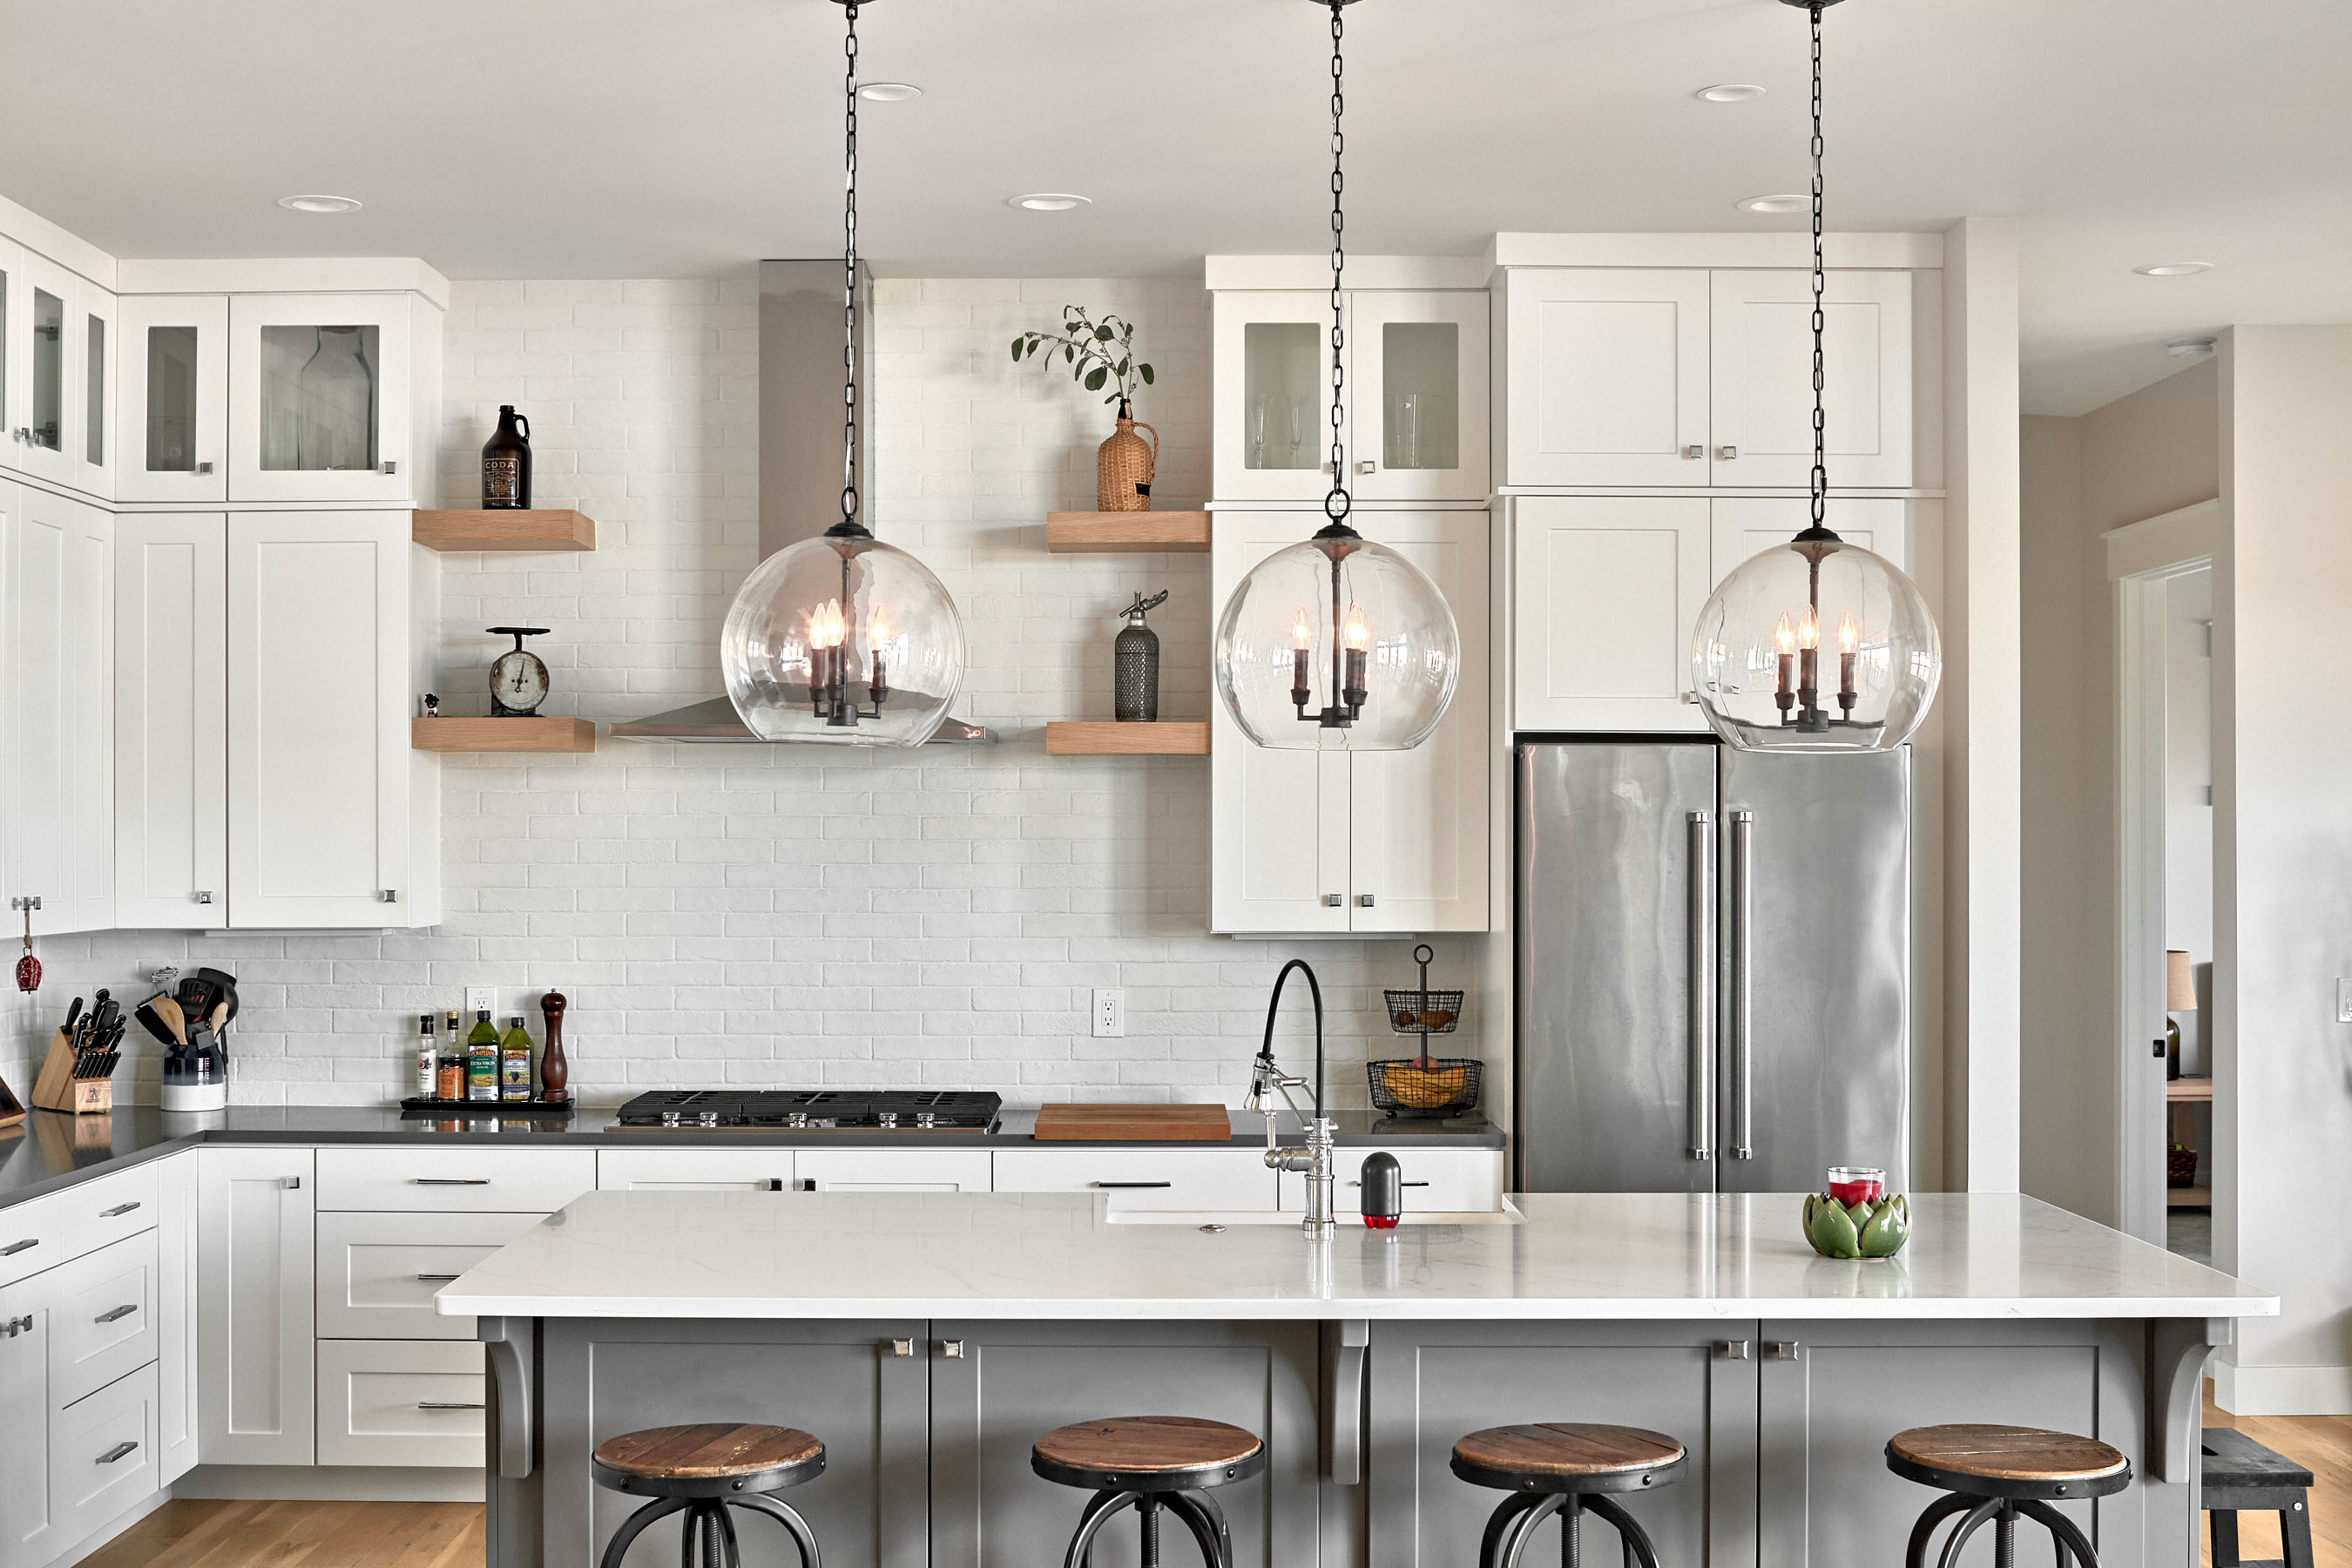 Interior photography of kitchen with glass globe pendants–Timnath, Colorado residence located in Wild Wing.